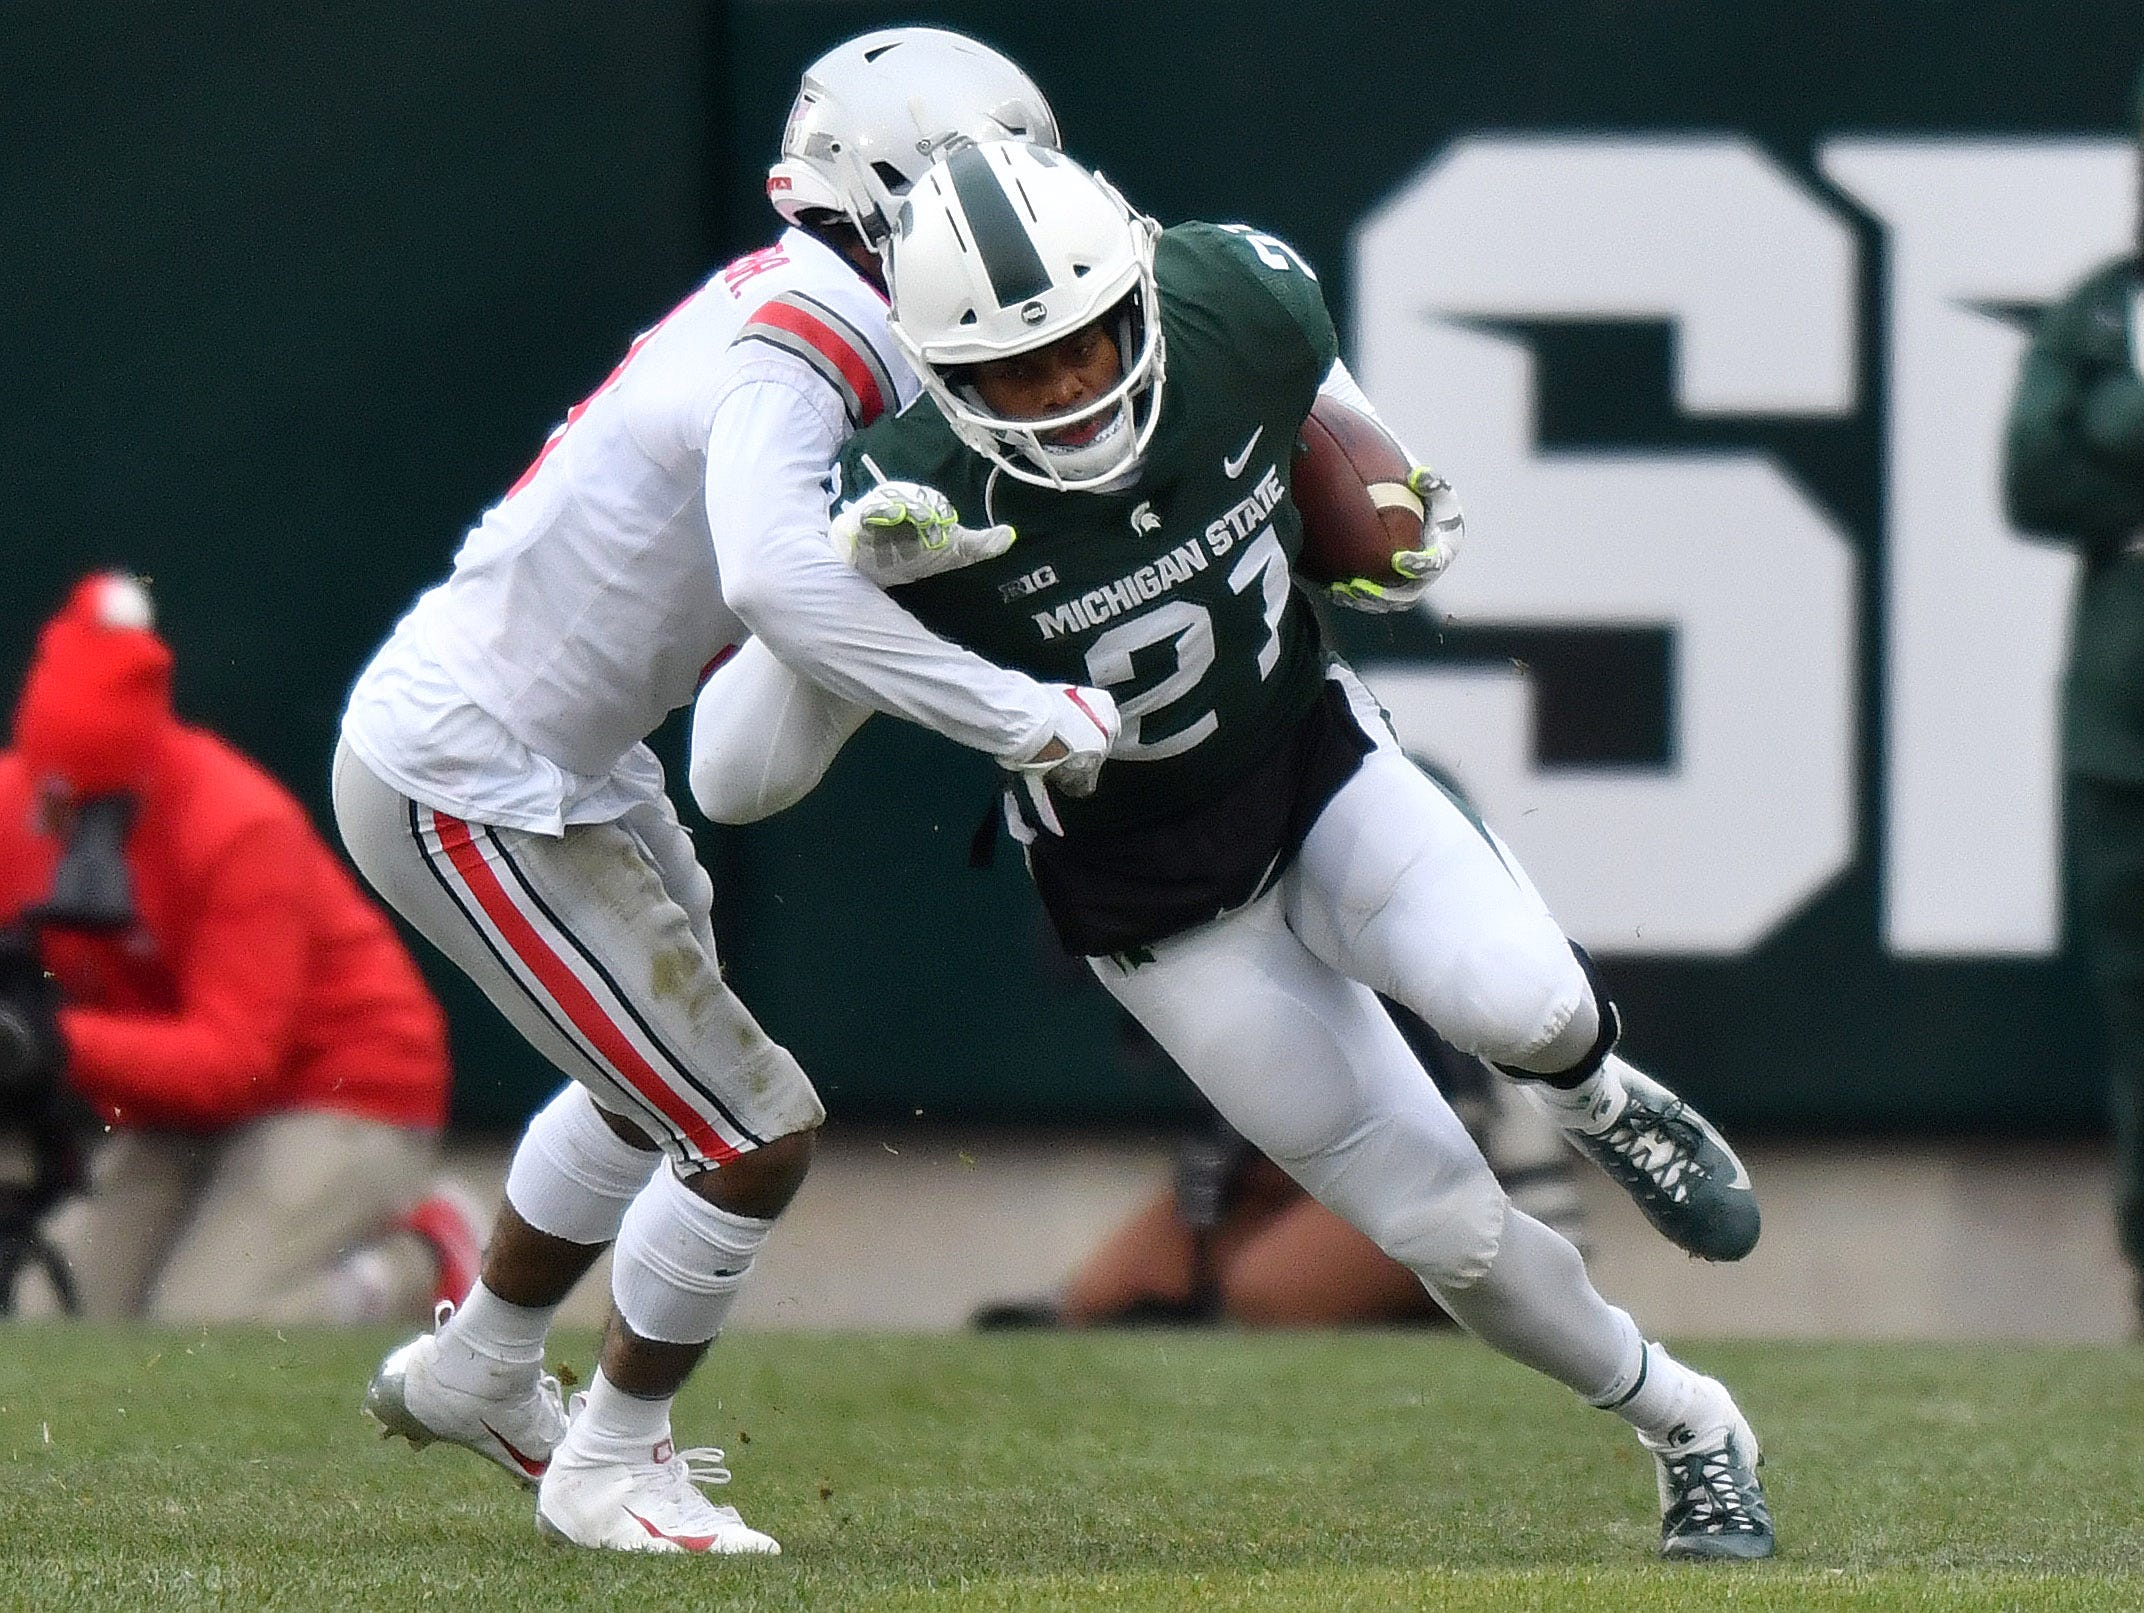 Spartan Cam Chambers slips past a Buckeye tackler in the third quarter.